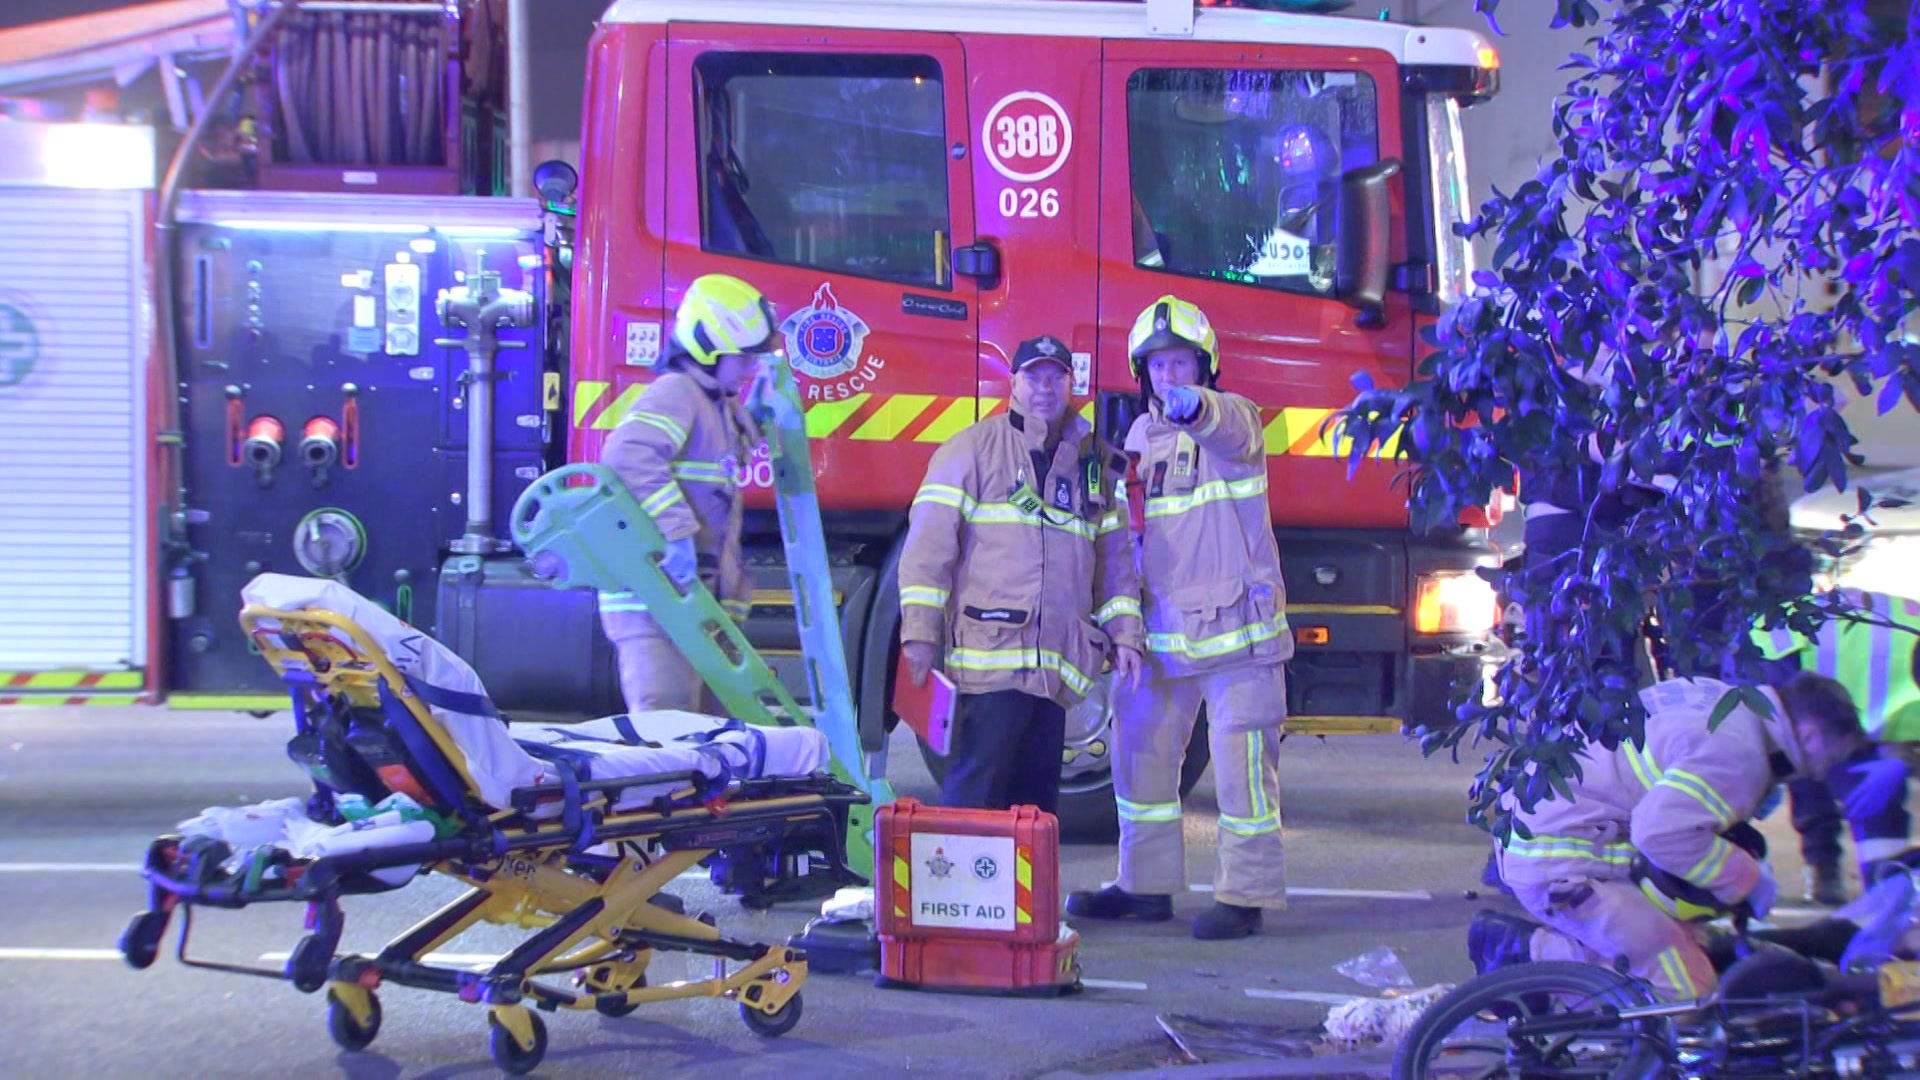 Emergency workers at an accident scene.